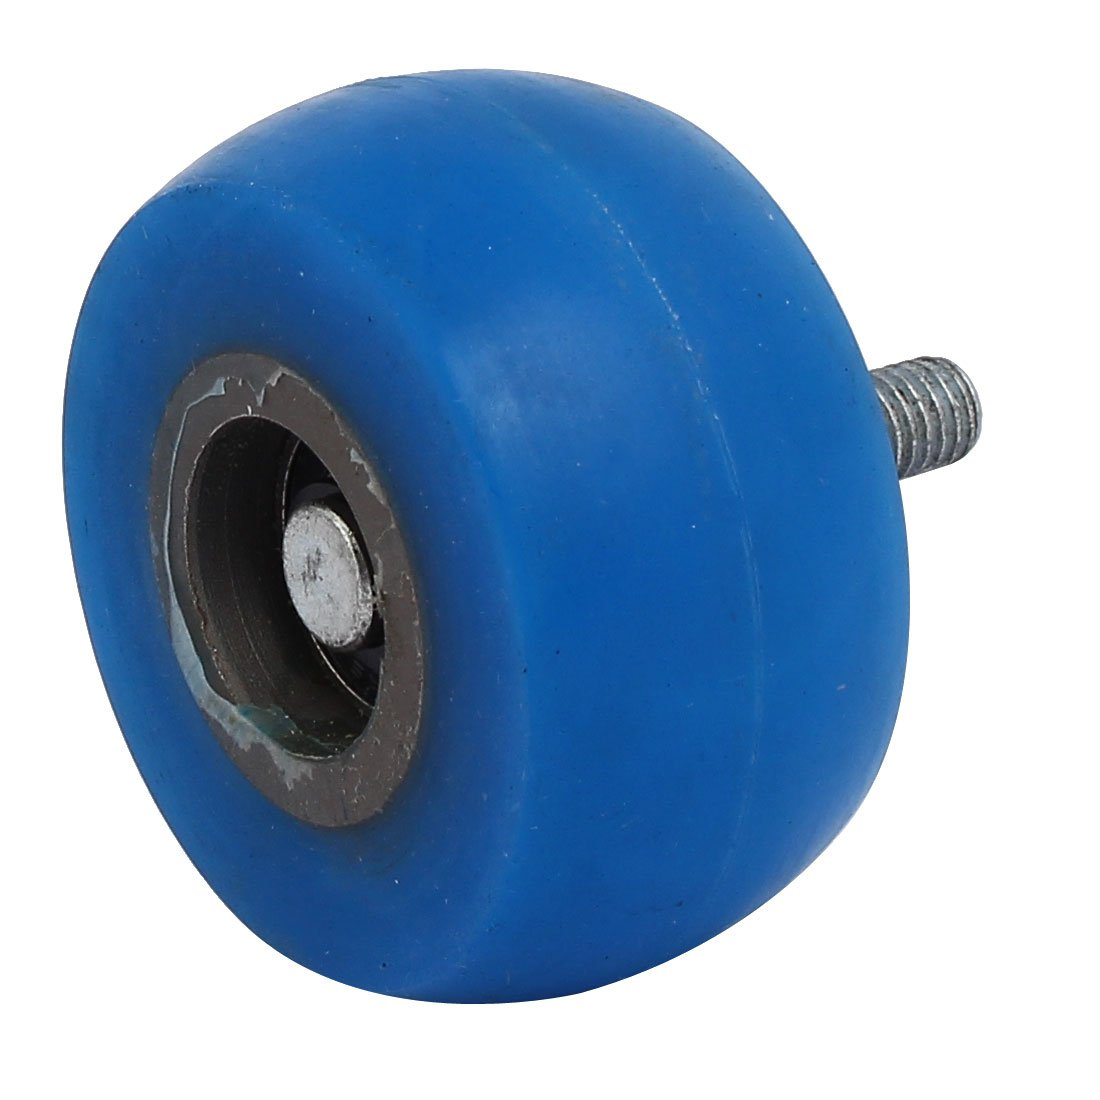 uxcell M8 Thread Dia 60mm x 30mm R30 Coating Machine Silicon Rubber Wheel Roller